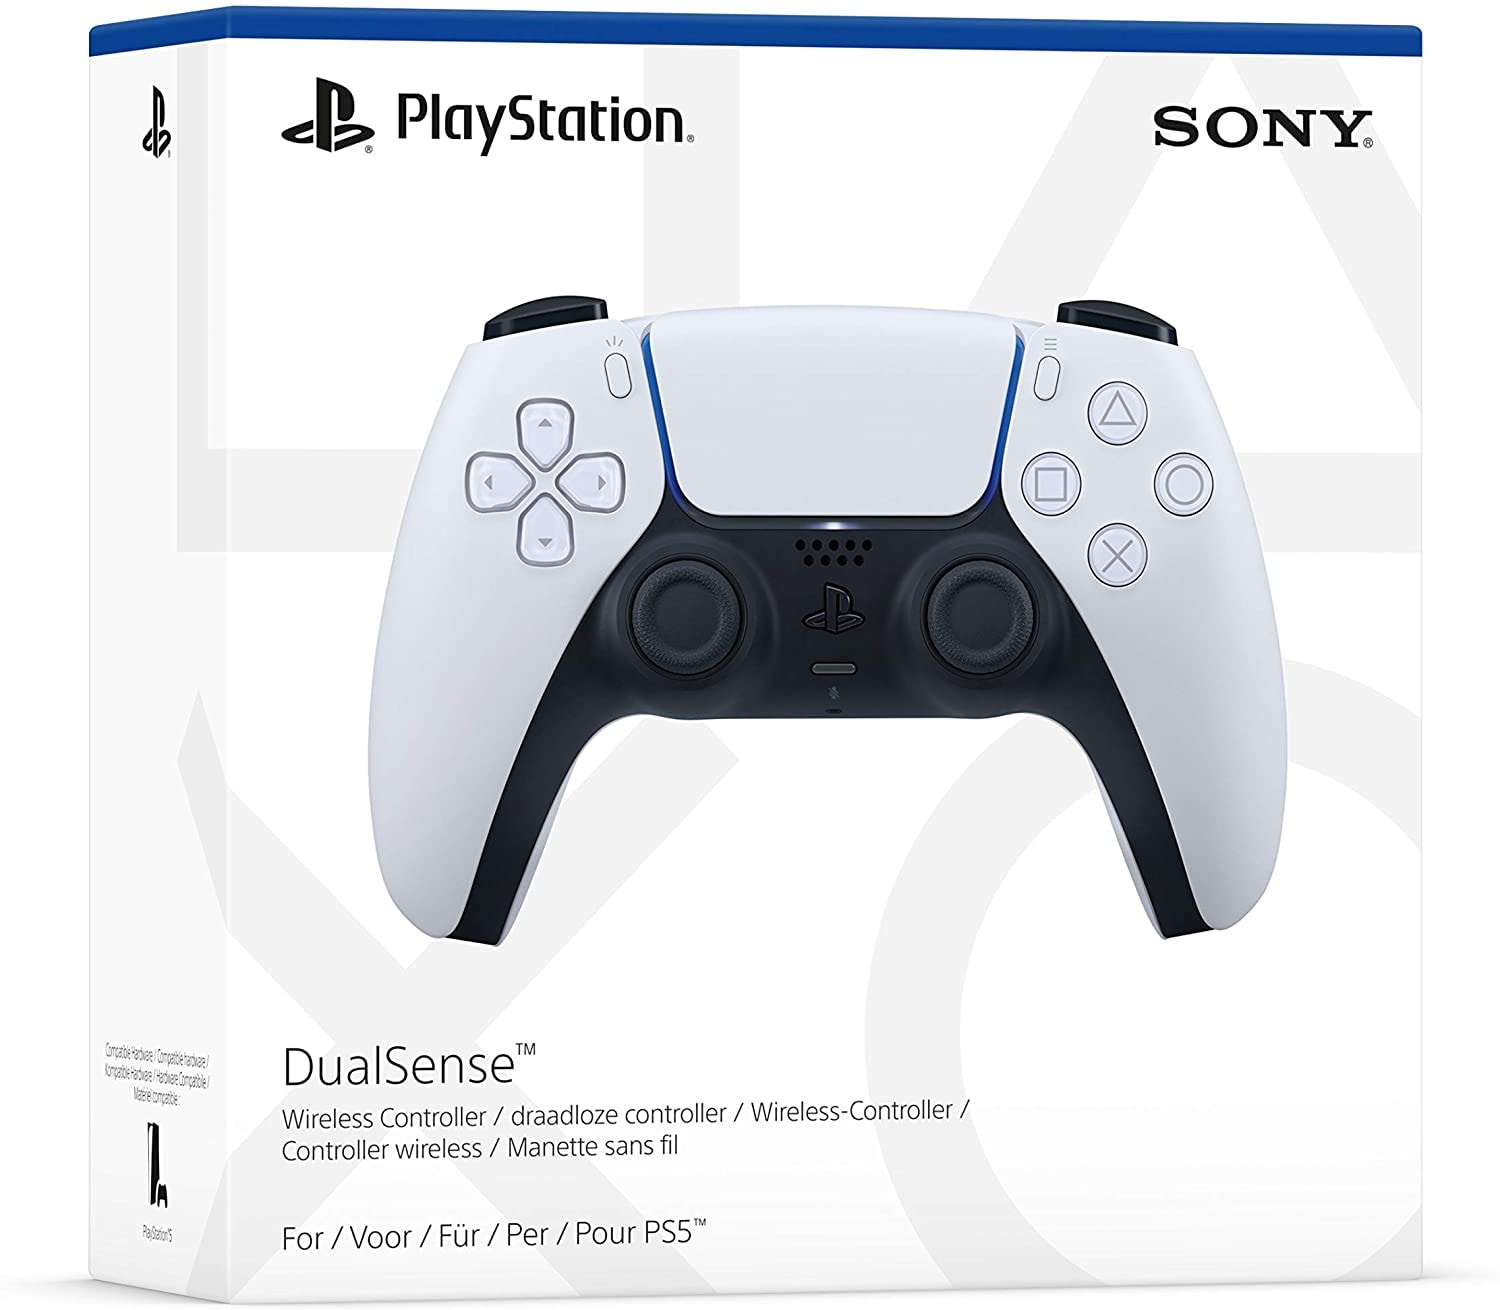 Sony PlayStation DualSense PS5 Controller White - 1